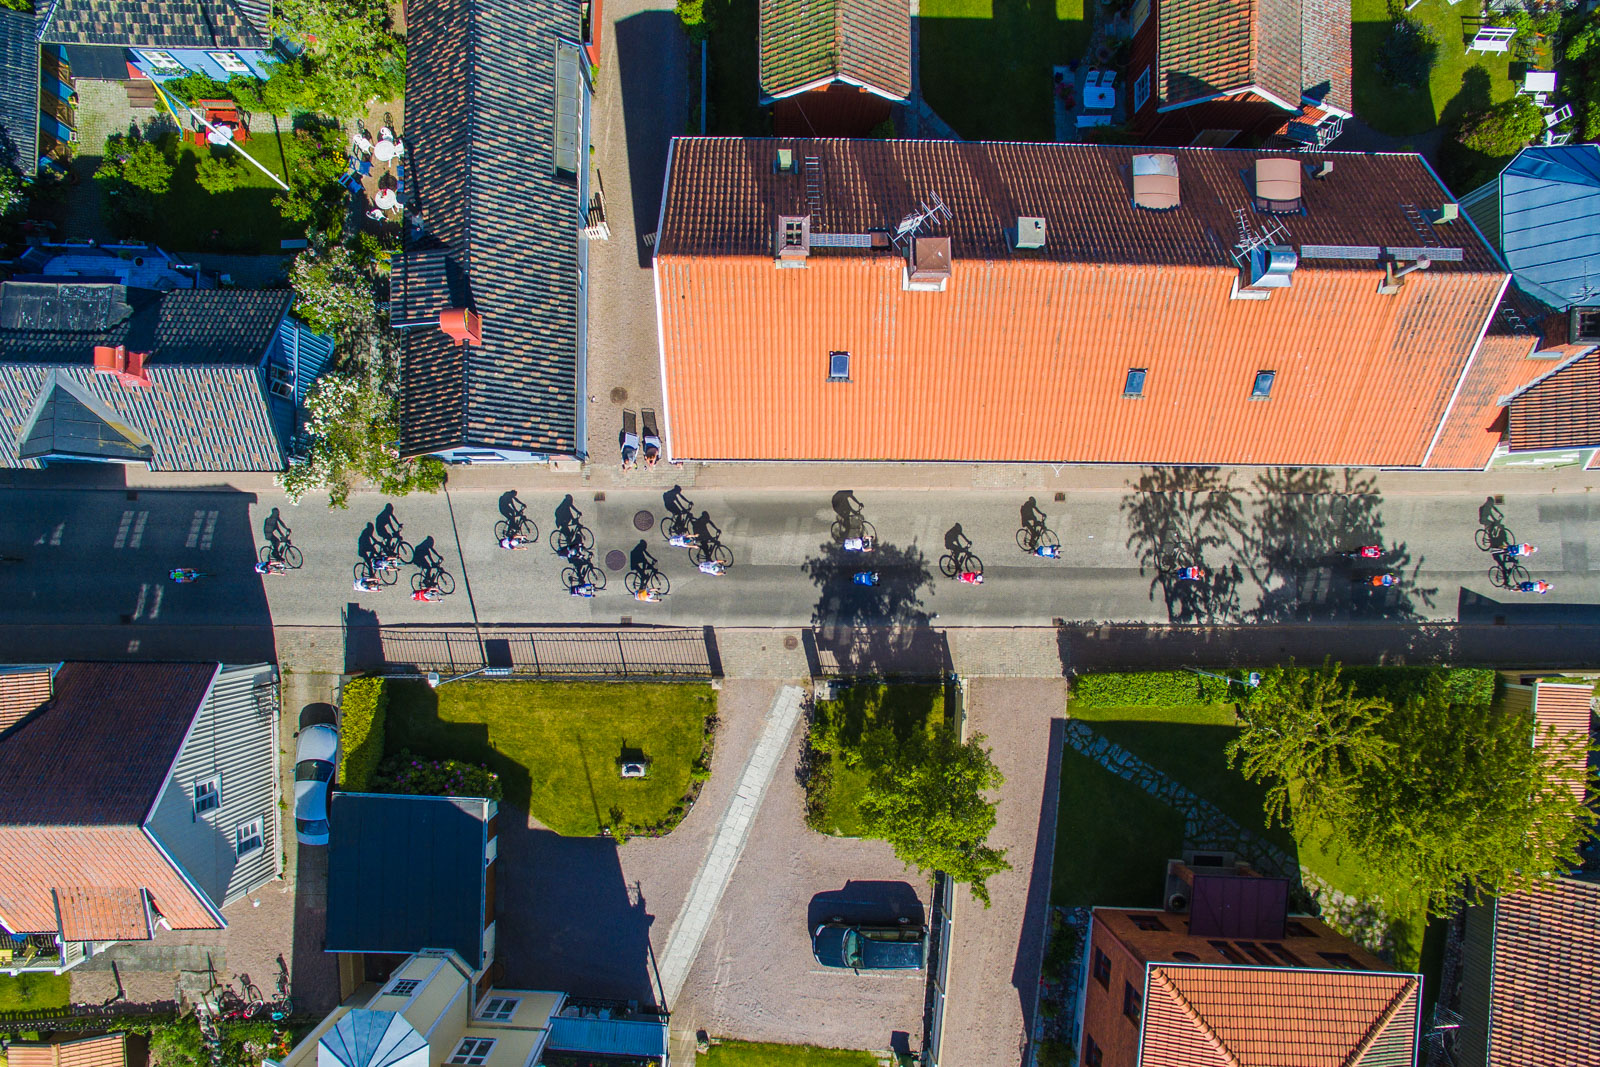 drone aerial photo, vatternrundan, bicycle race, sweden